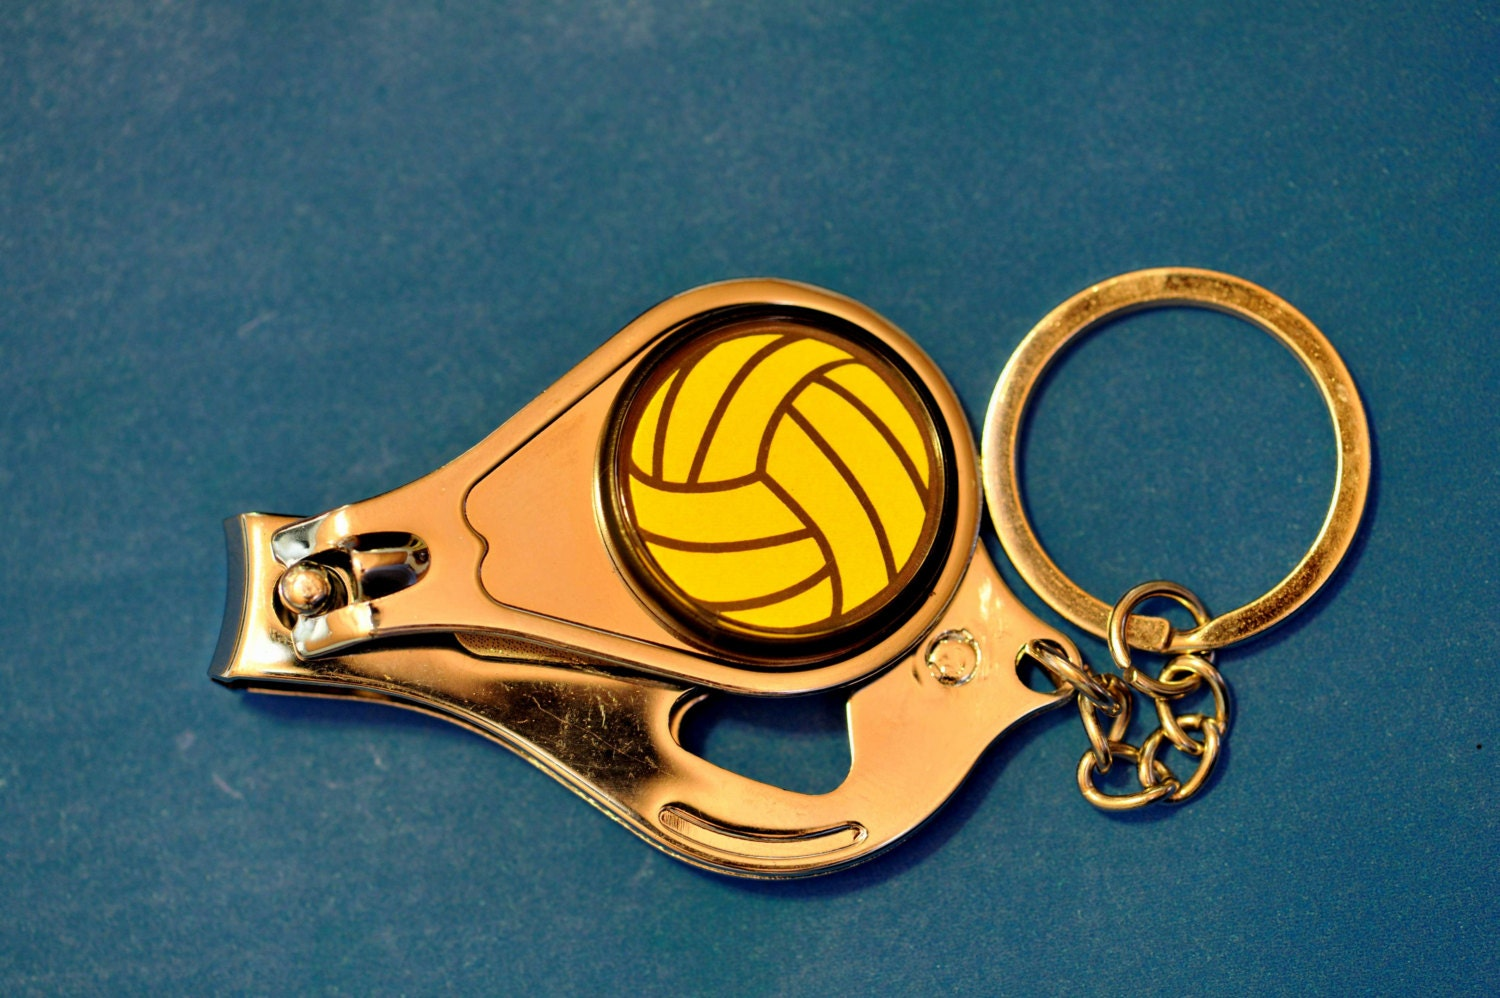 Water Polo Ball Nail Clippers/Bottle Opener/Keychain